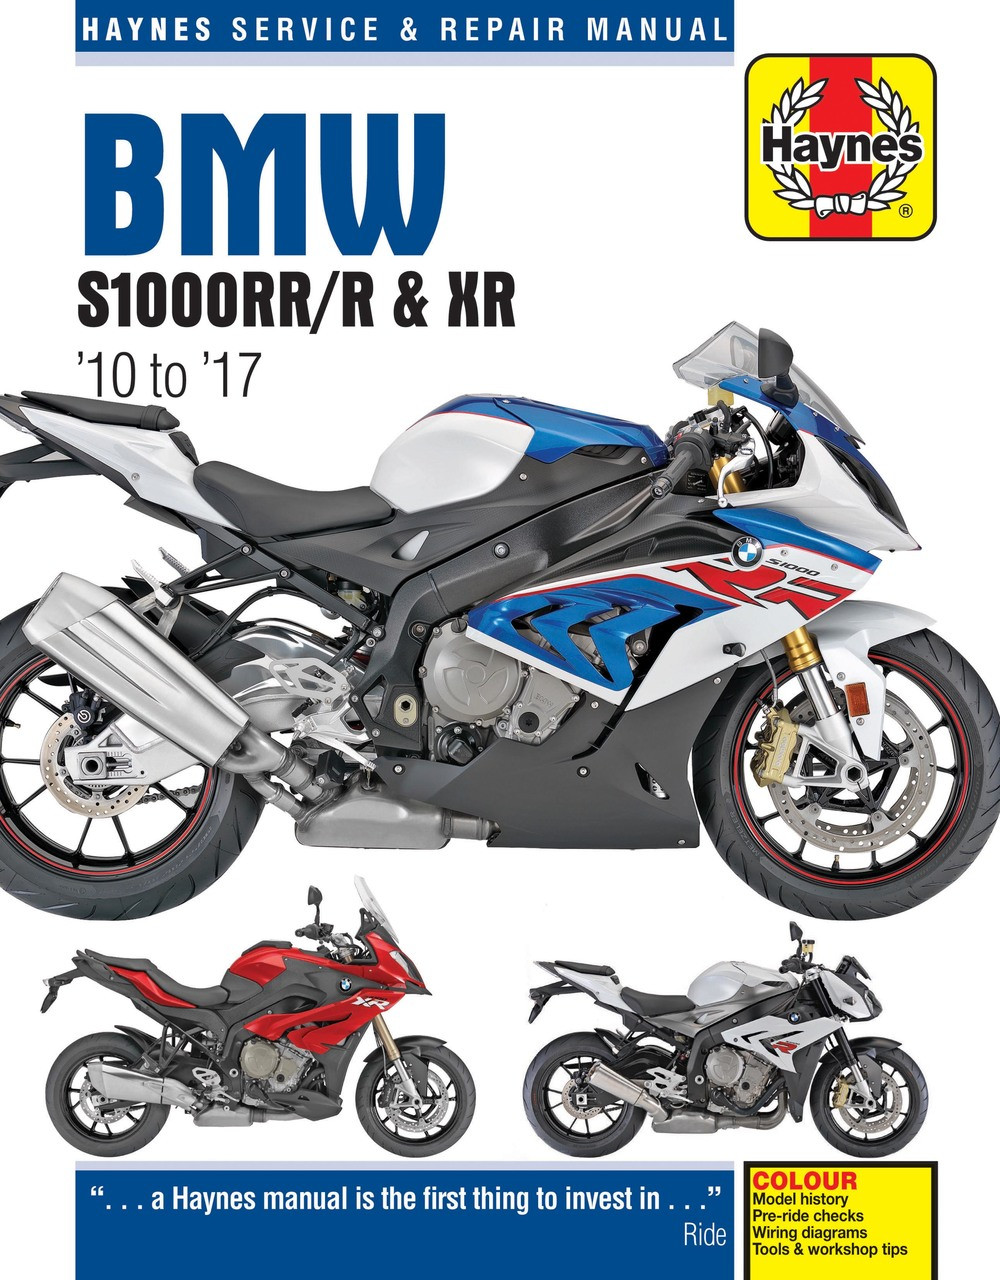 bmw s1000rr s1000r s1000xr 2010 2017 workshop manual rh automotobookshop com au bmw r1200r workshop manual pdf bmw r1200rt shop manual